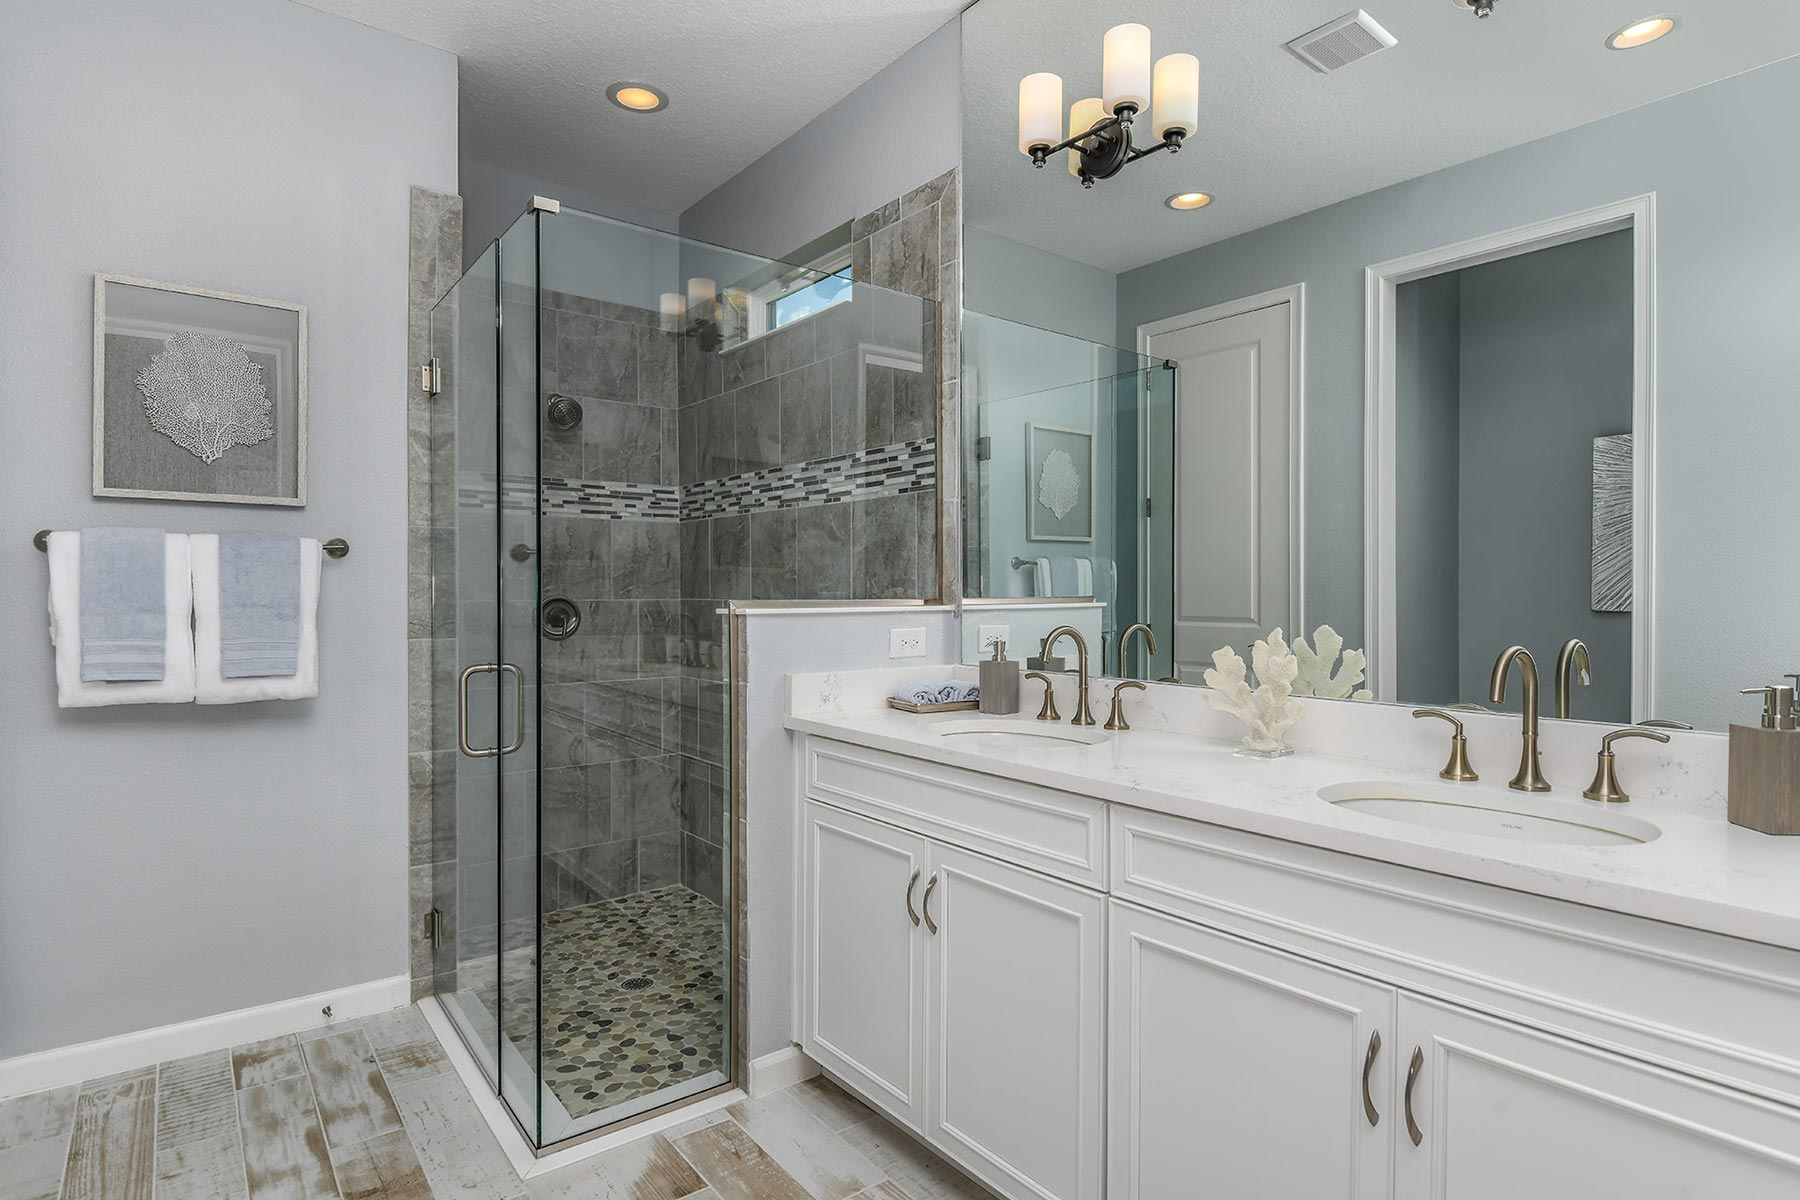 Coquina Plan Bathroom_Master Bath at Boyette Park in Riverview Florida by Mattamy Homes